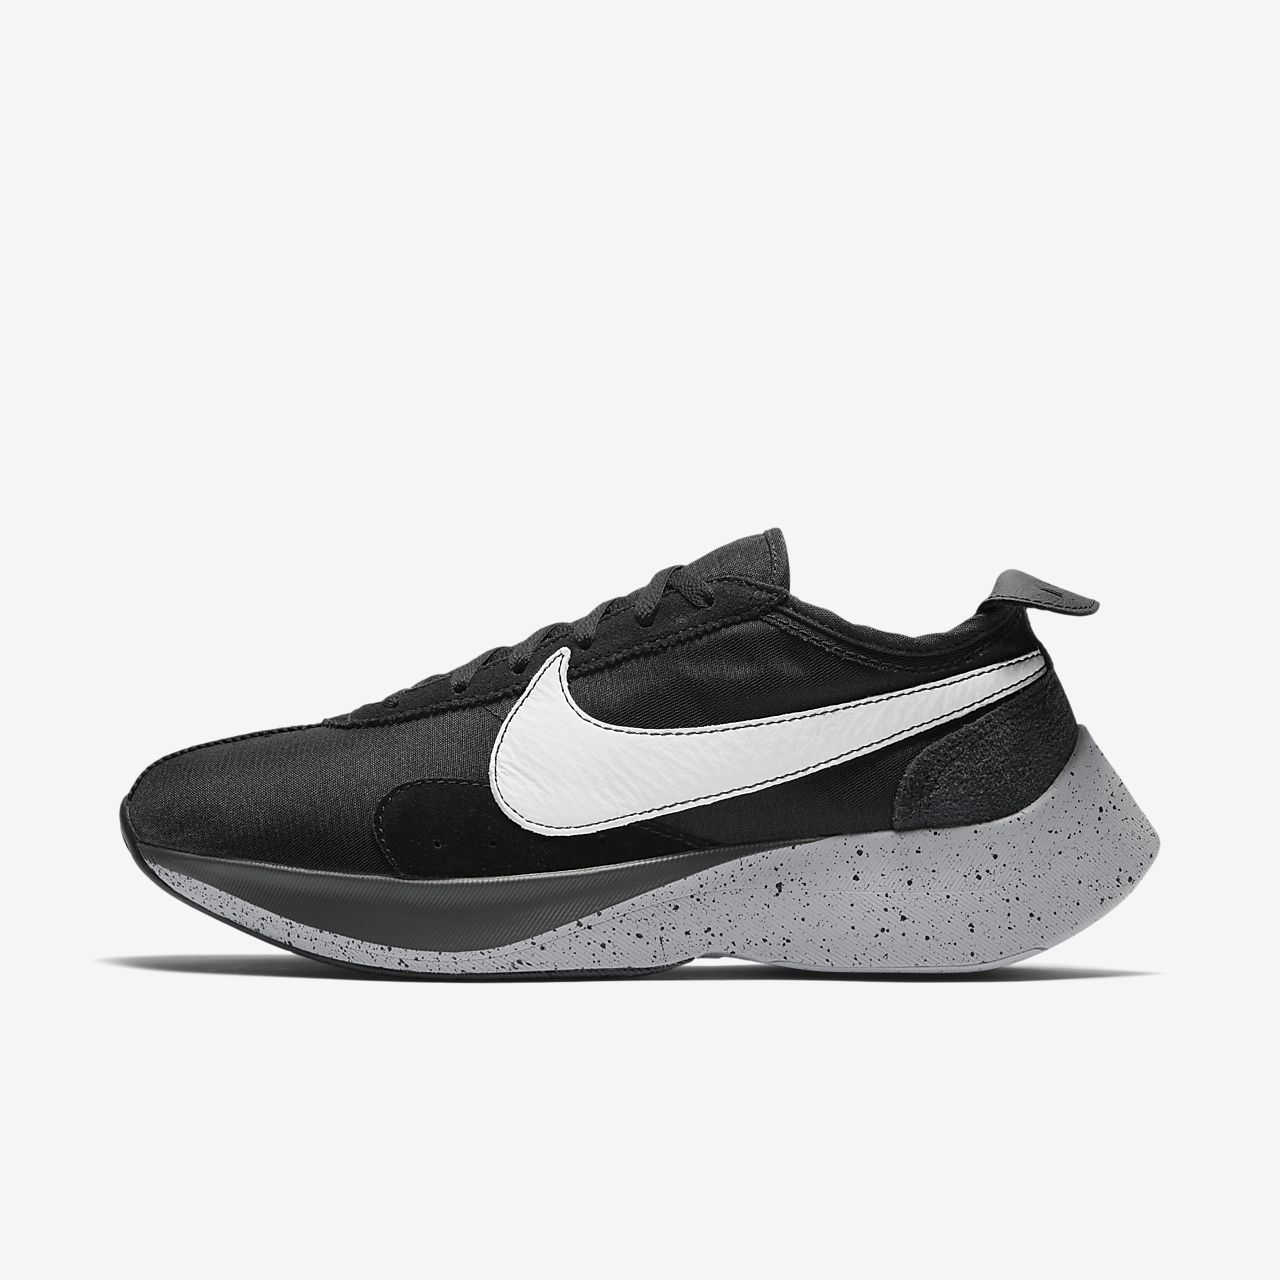 more photos cd715 12962 ... Chaussure Nike Moon Racer pour Homme